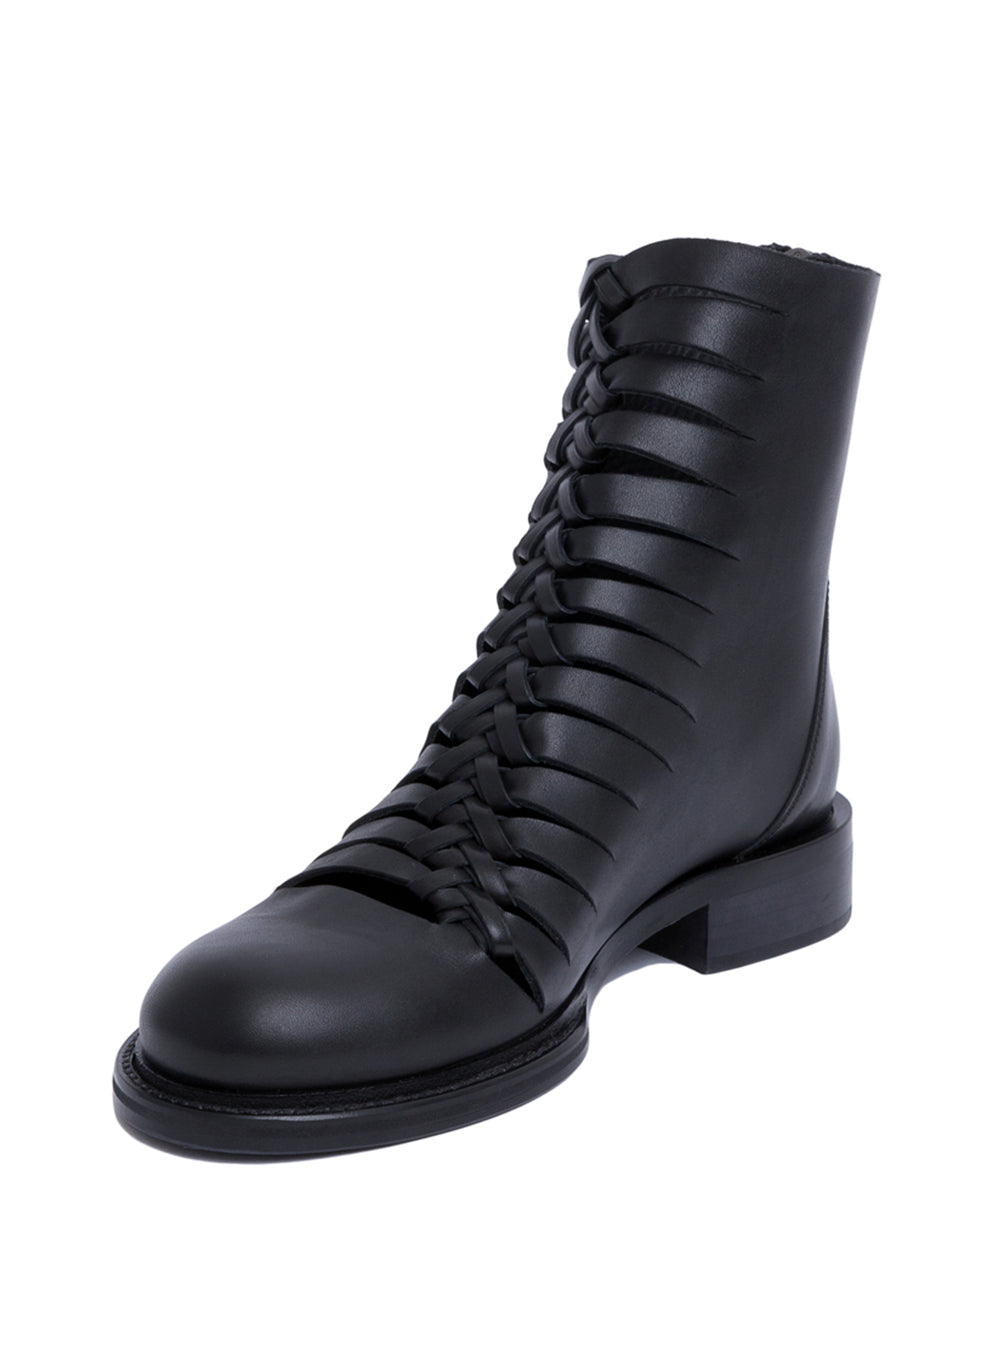 ANN DEMEULEMEESTER | Ankle Boots in Tuscon Nero